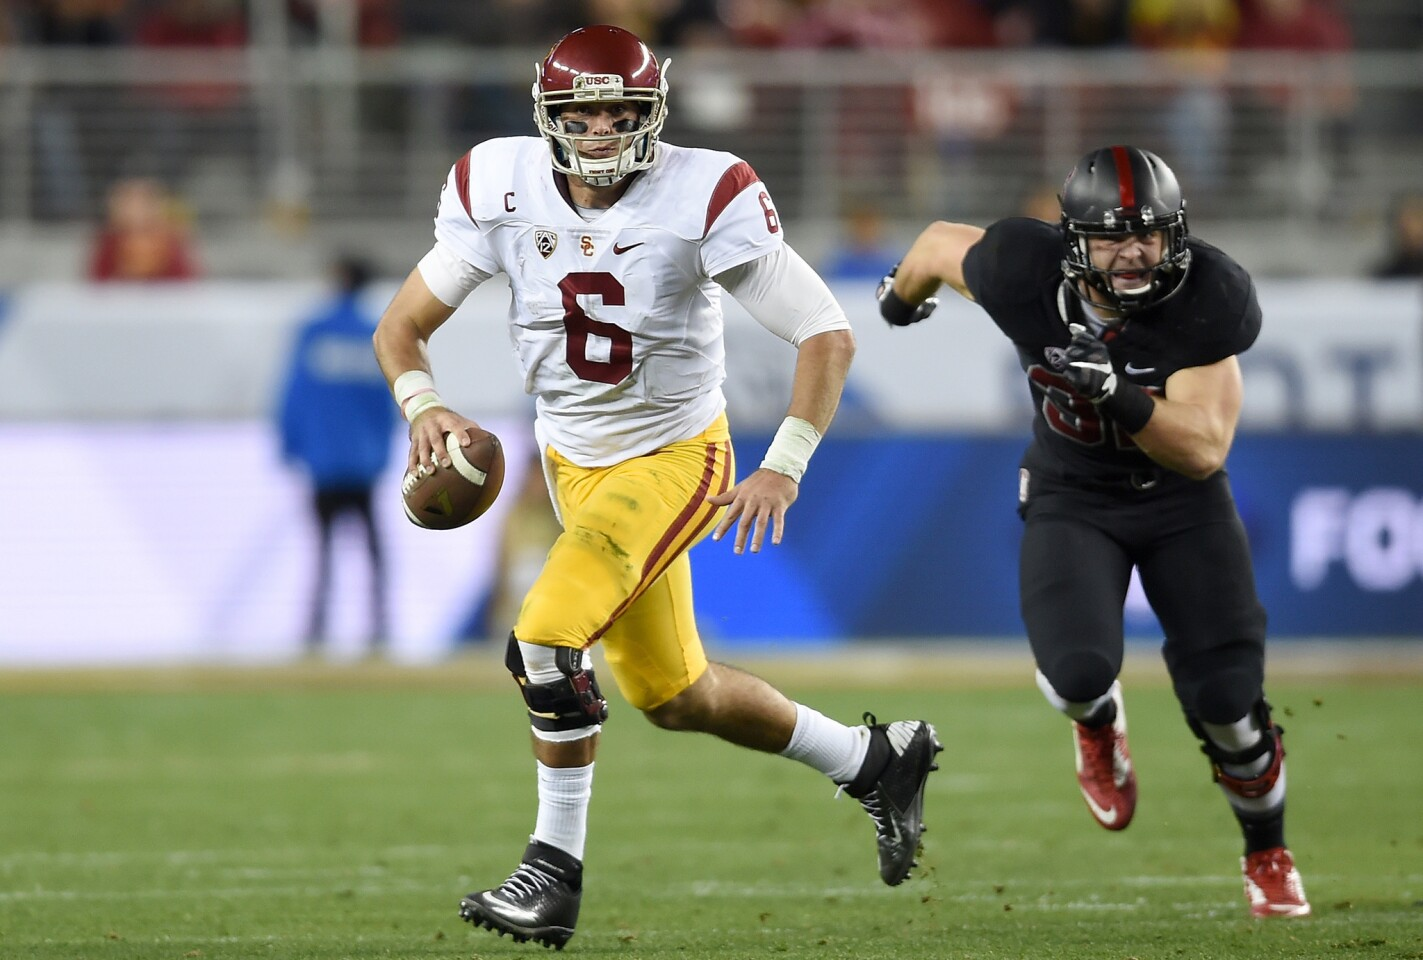 USC's Cody Kessler scrambles with the ball against Stanford during the second quarter of the Pac-12 Championship game at Levi's Stadium on Saturday.